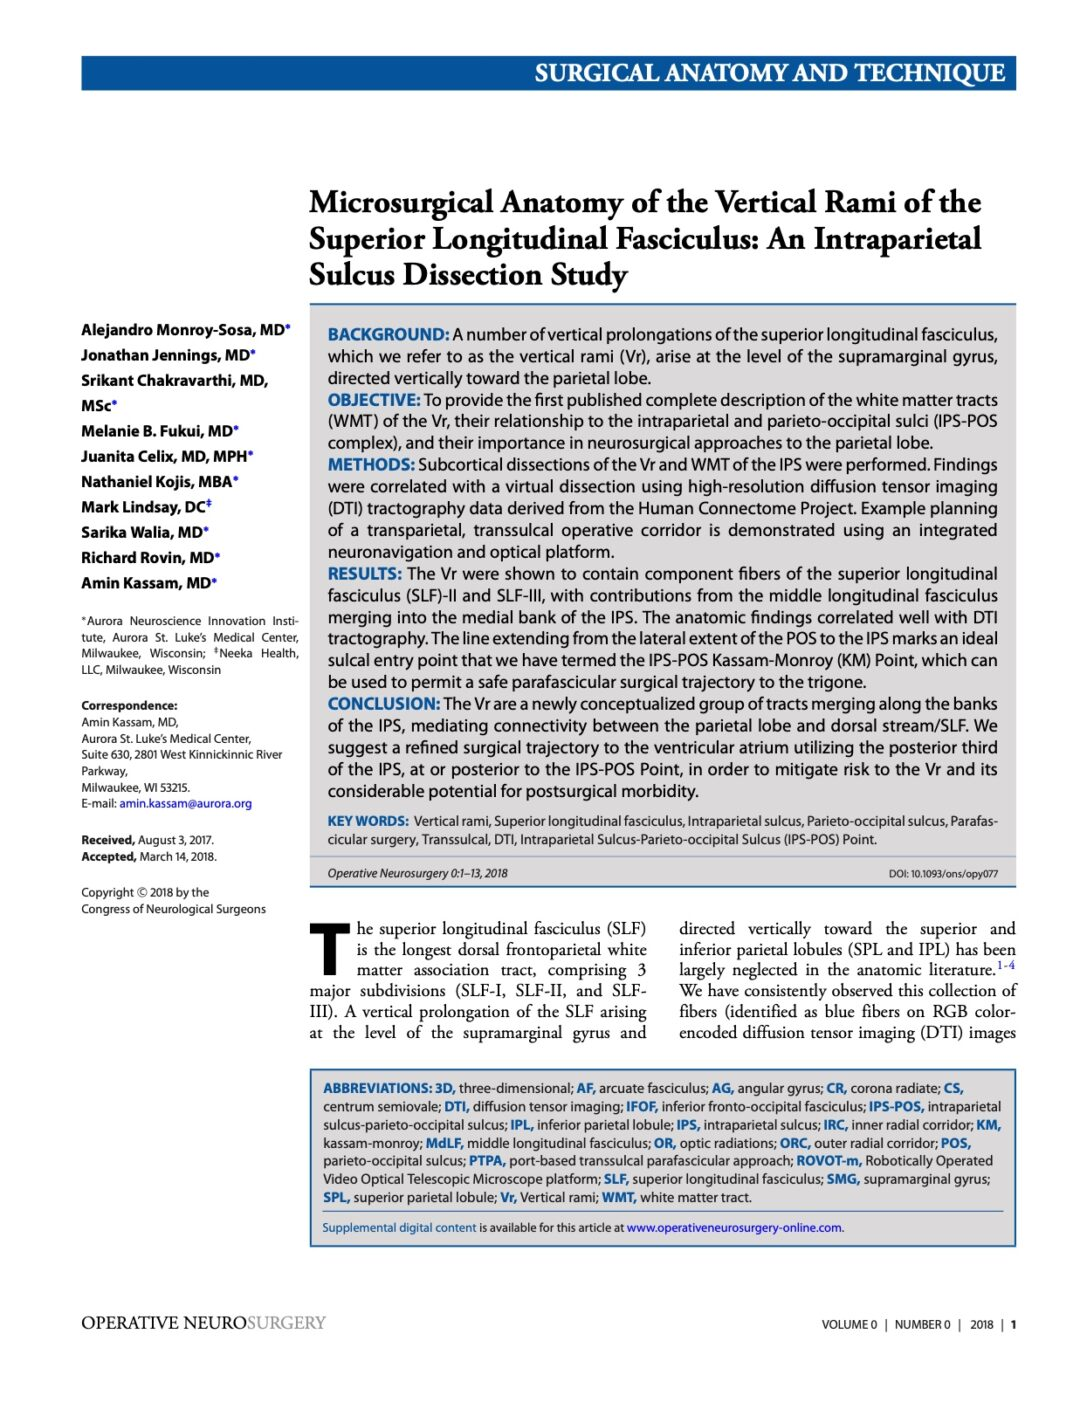 Microsurgical Anatomy of the Vertical Rami of the Superior Longitudinal Fasciculus: An Intraparietal Sulcus Dissection Study